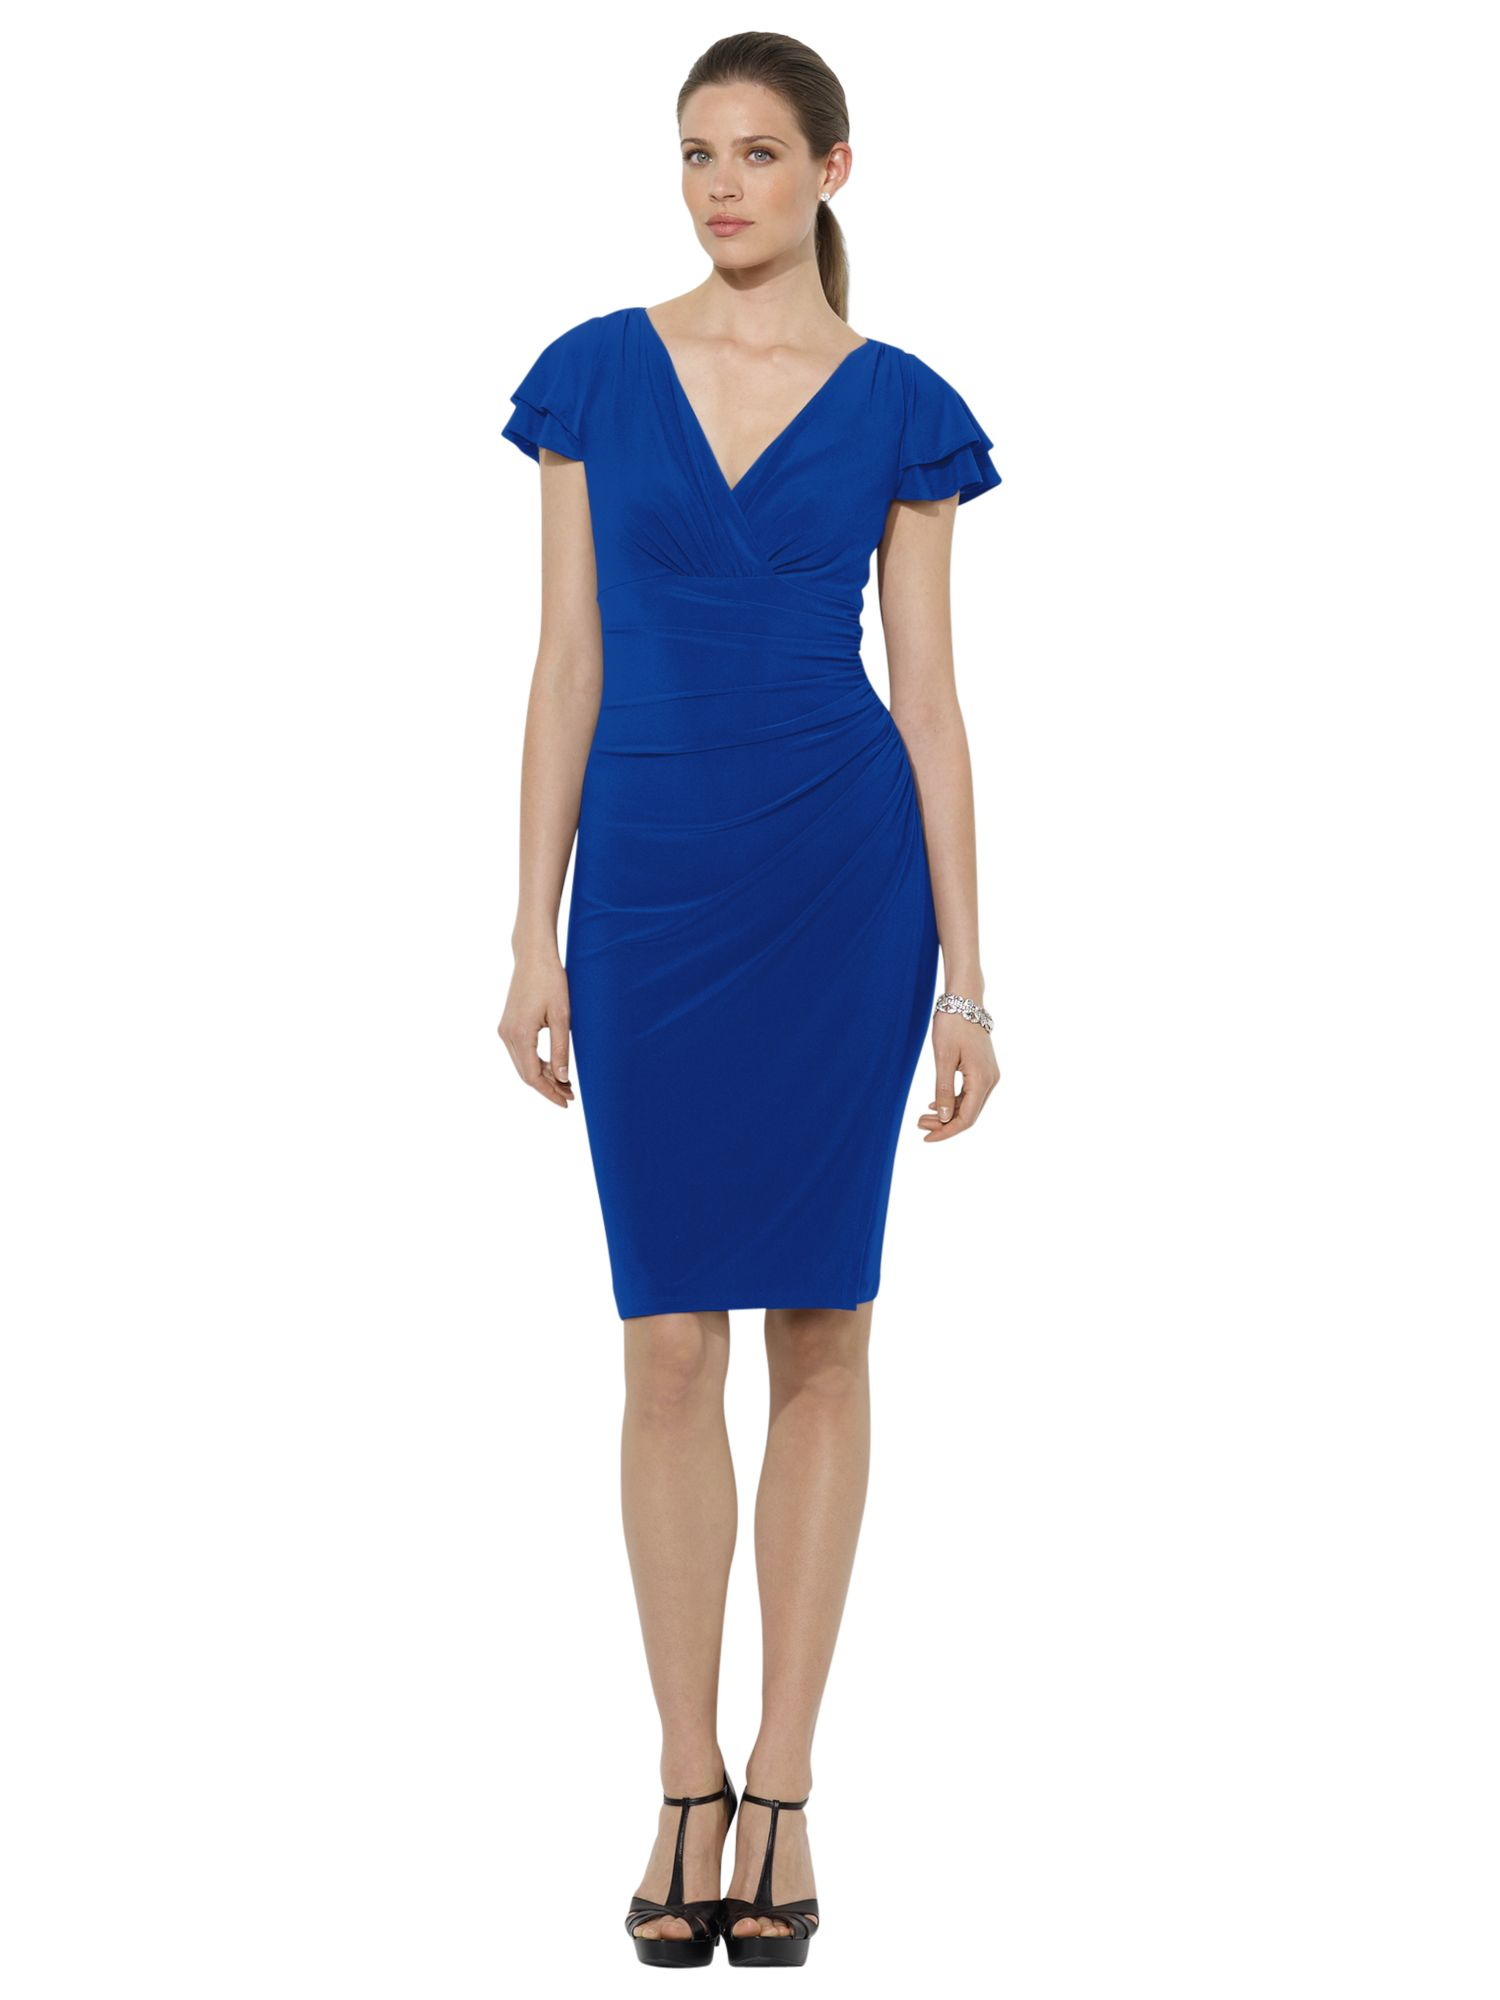 lauren ralph lauren cap sleeve dress cannes blue, lauren, ralph, cap, sleeve, dress, cannes, blue, lauren ralph lauren, 6|12|10|8|16|14, women, womens dresses, men, ralph lauren, lauren ralph lauren for women, shop by brand, 1929591